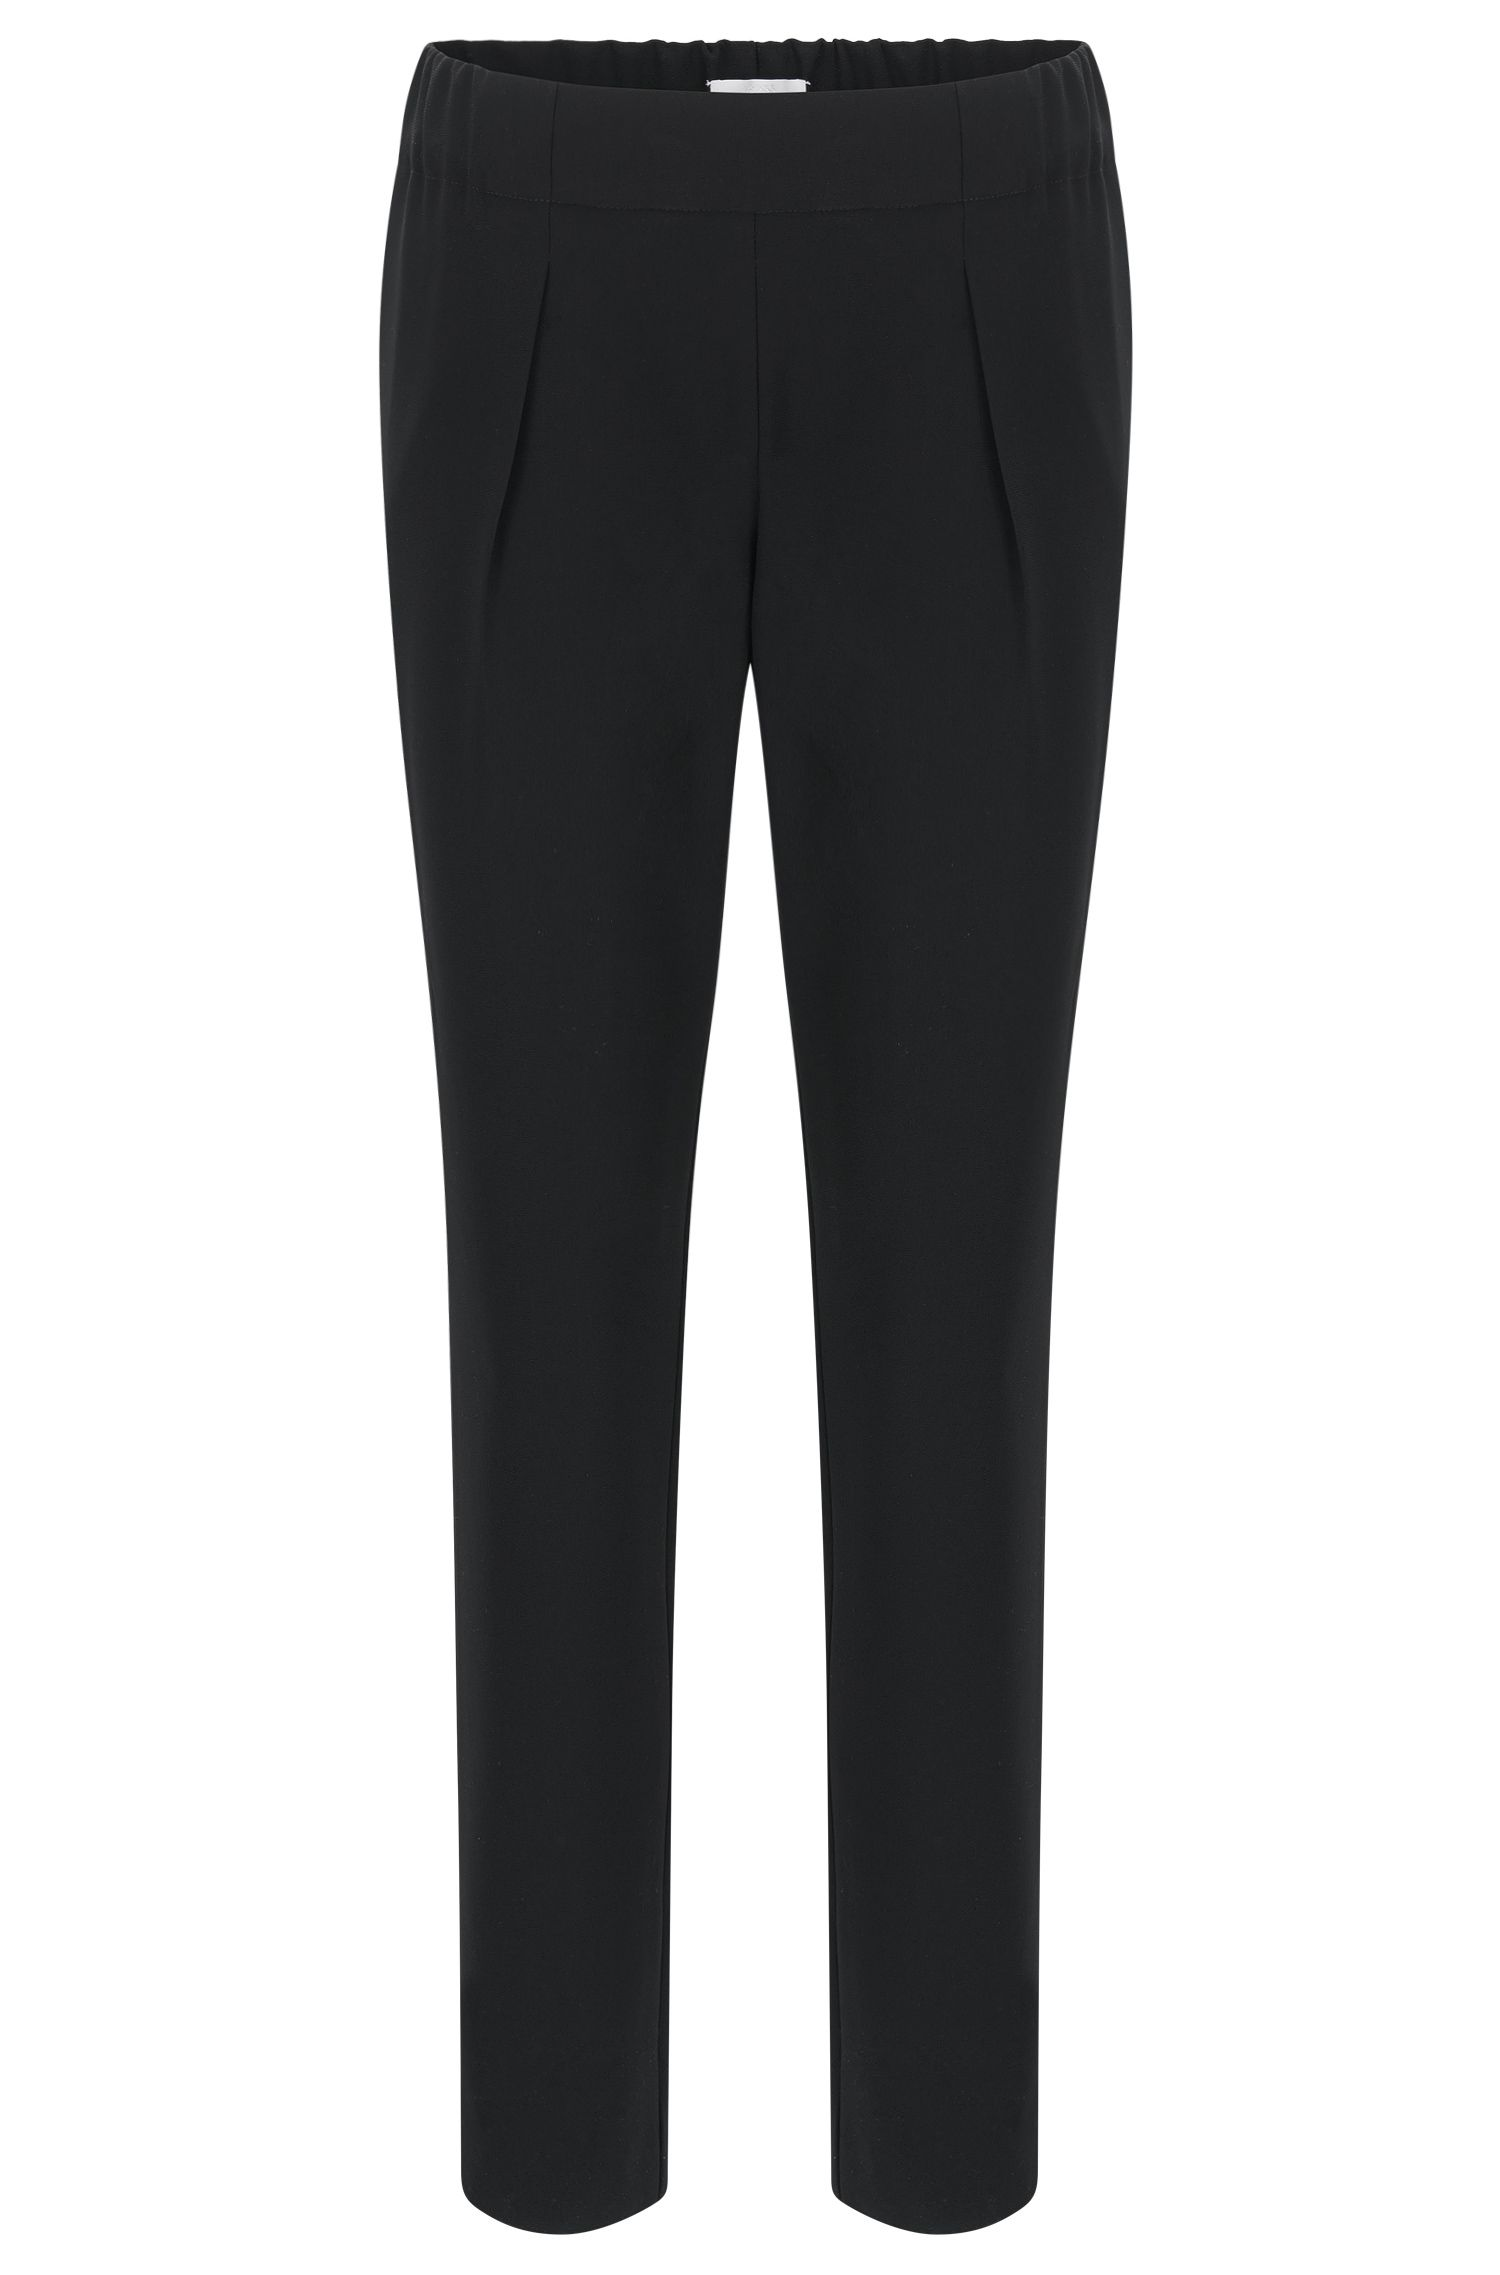 Pantaloni relaxed fit in stile jogging